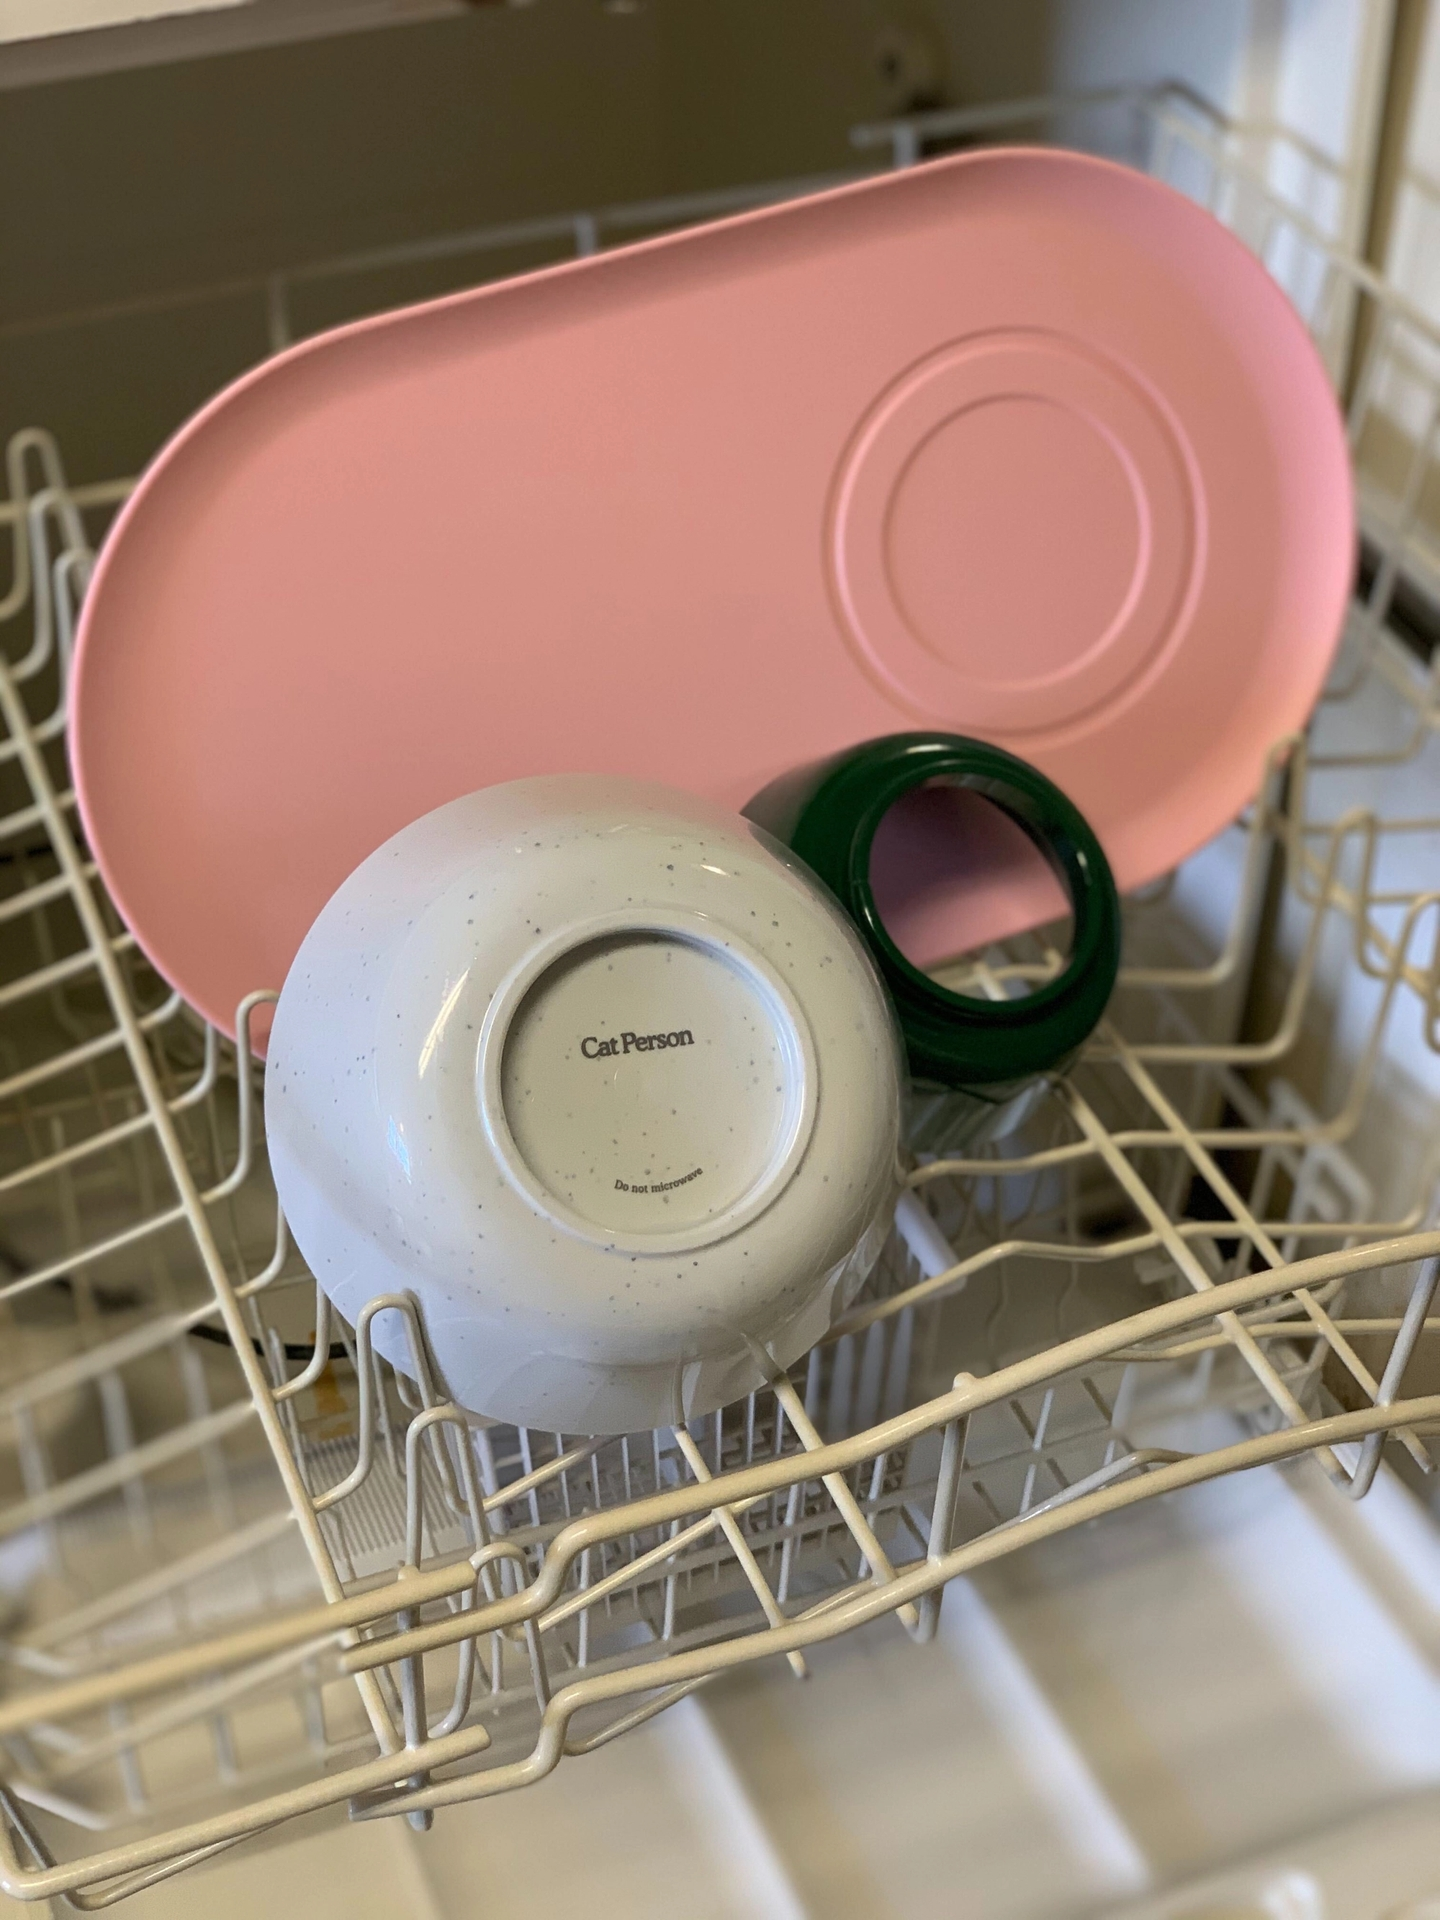 Cat Person Mesa Bowl components in the top rack of a dishwasher